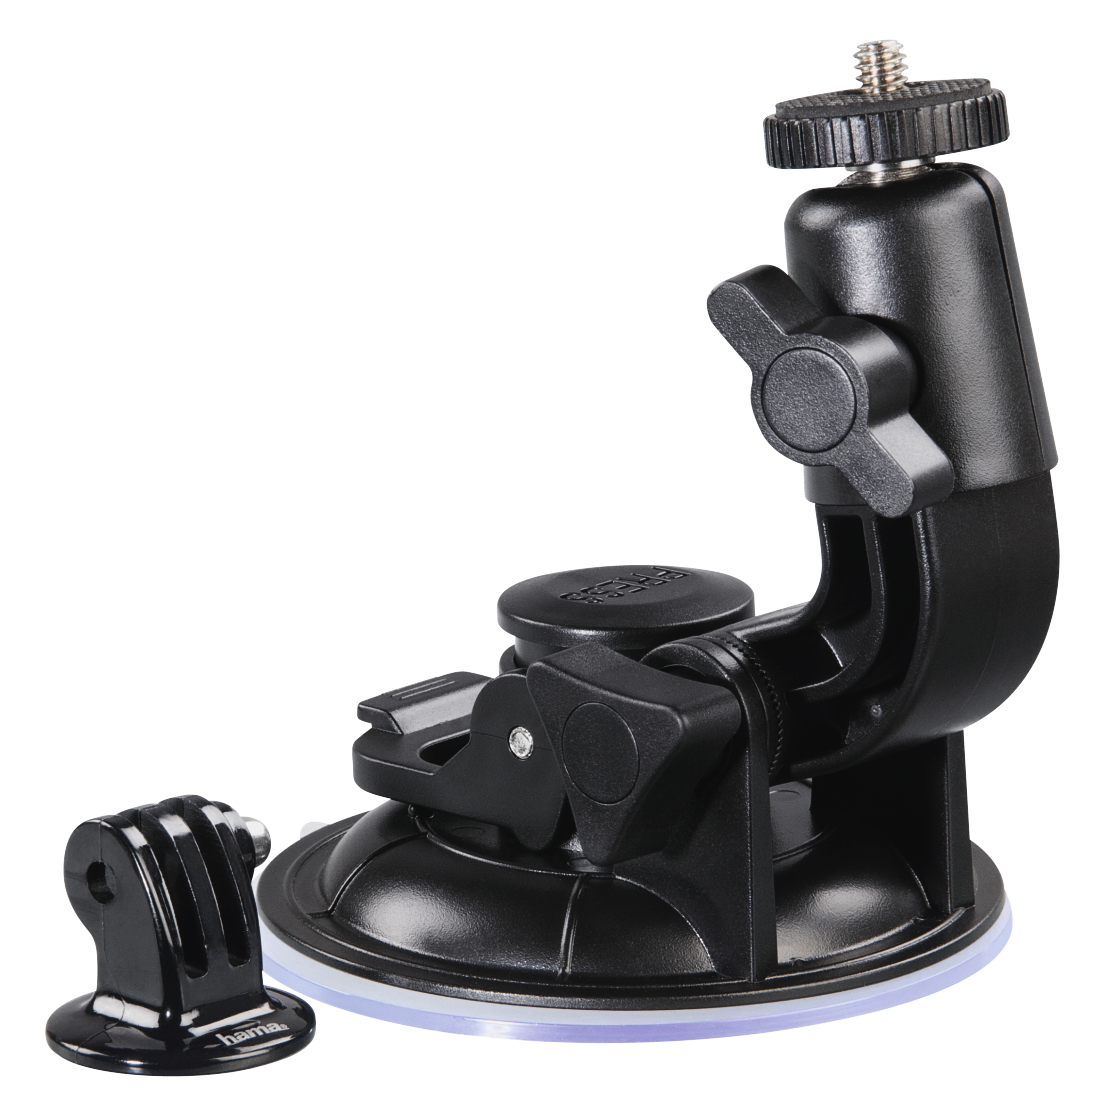 abx2 High-Res Image 2 - Hama, Suction Mount with Ball Head 360 for GoPro